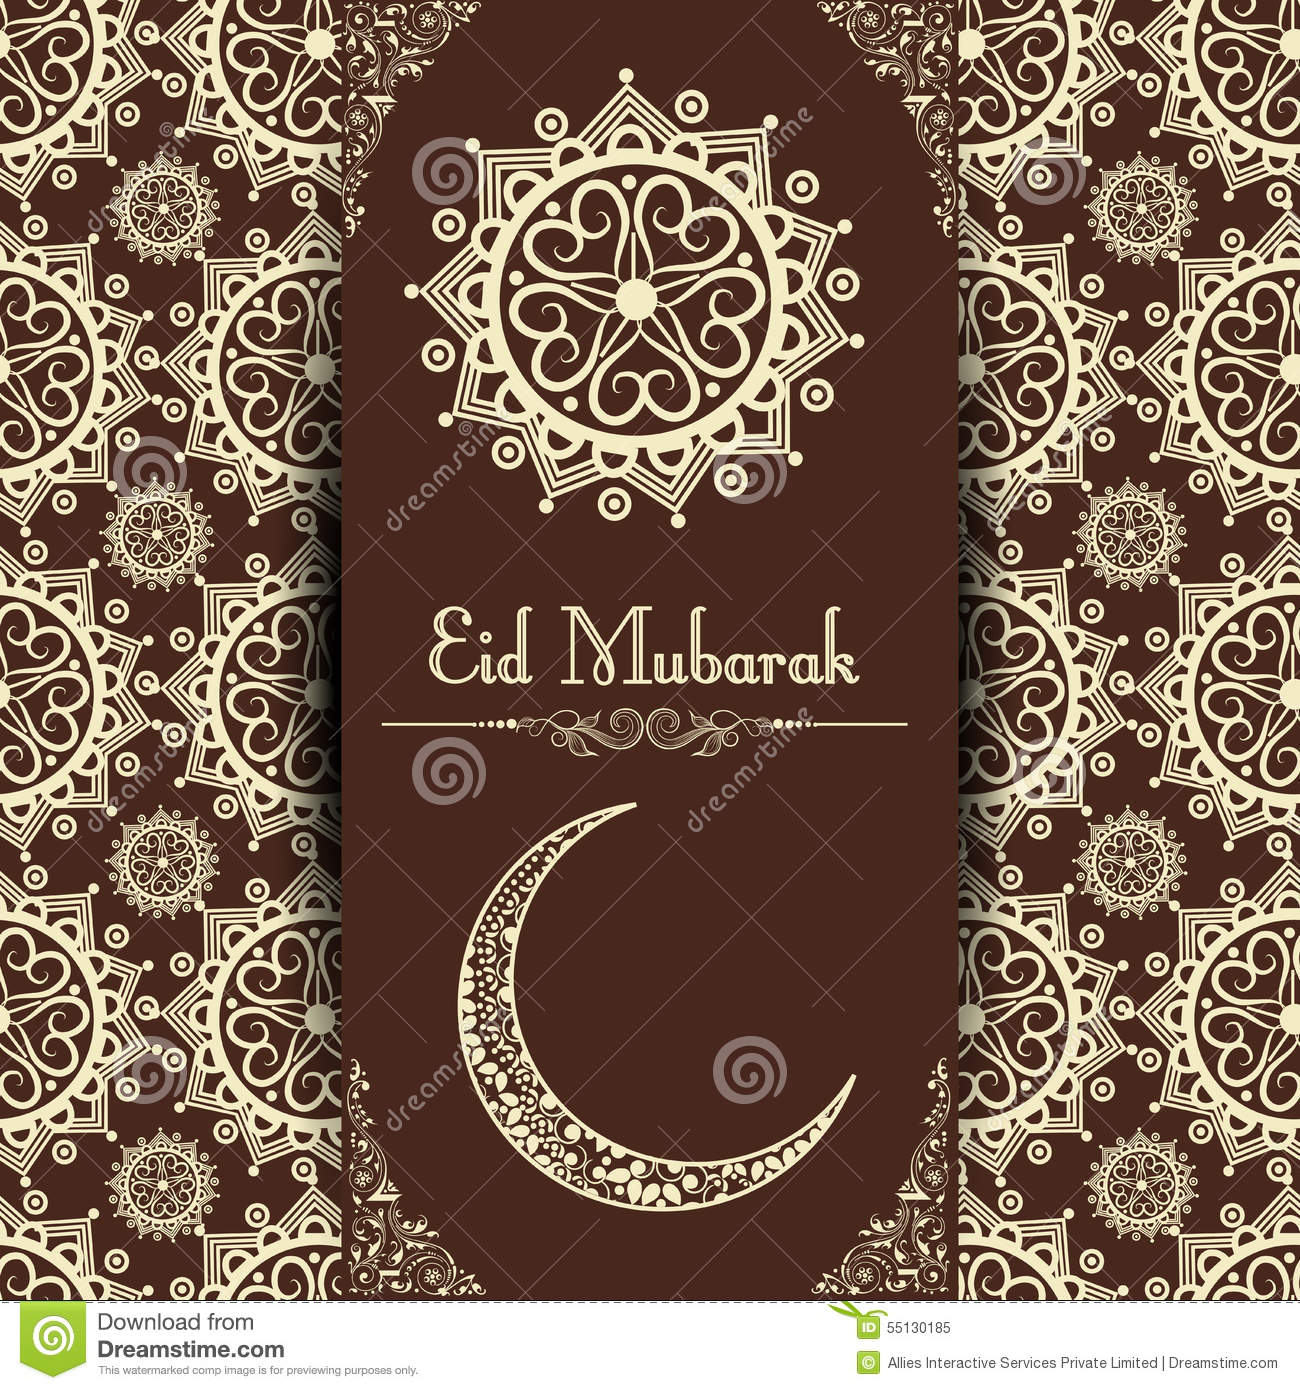 Floral Greeting Or Invitation Card For Eid Mubarak Celebration